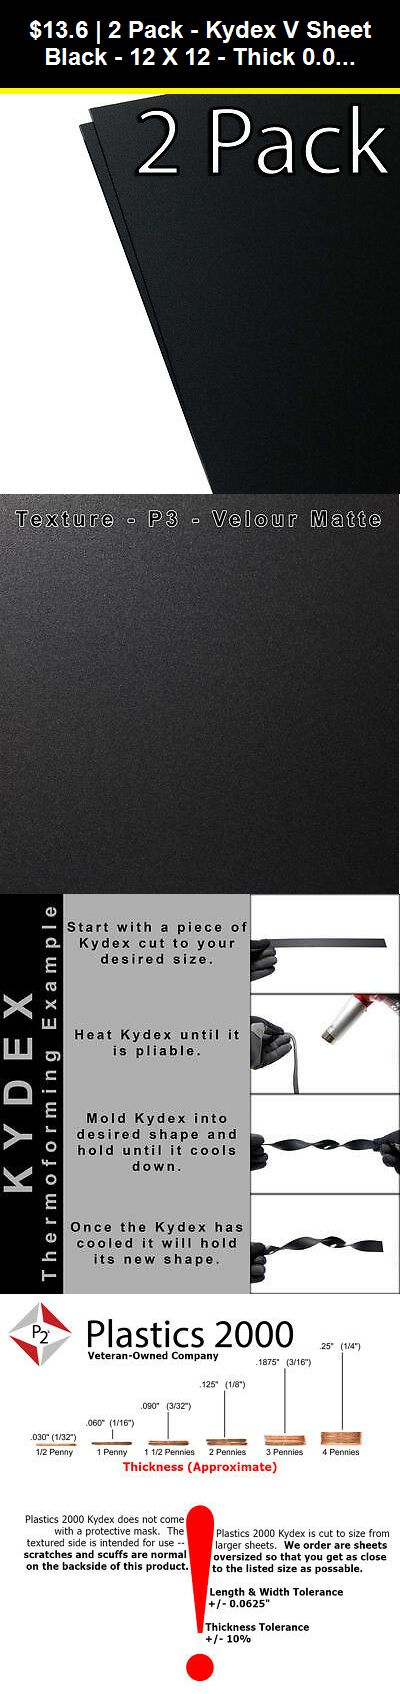 Other Art Supplies 16508 2 Pack Kydex V Sheet Black 12 X 12 Thick 0 060 Plastics 2000 Buy It Now Only 13 6 On Ebay Othe Kydex Kydex Sheet Sheet